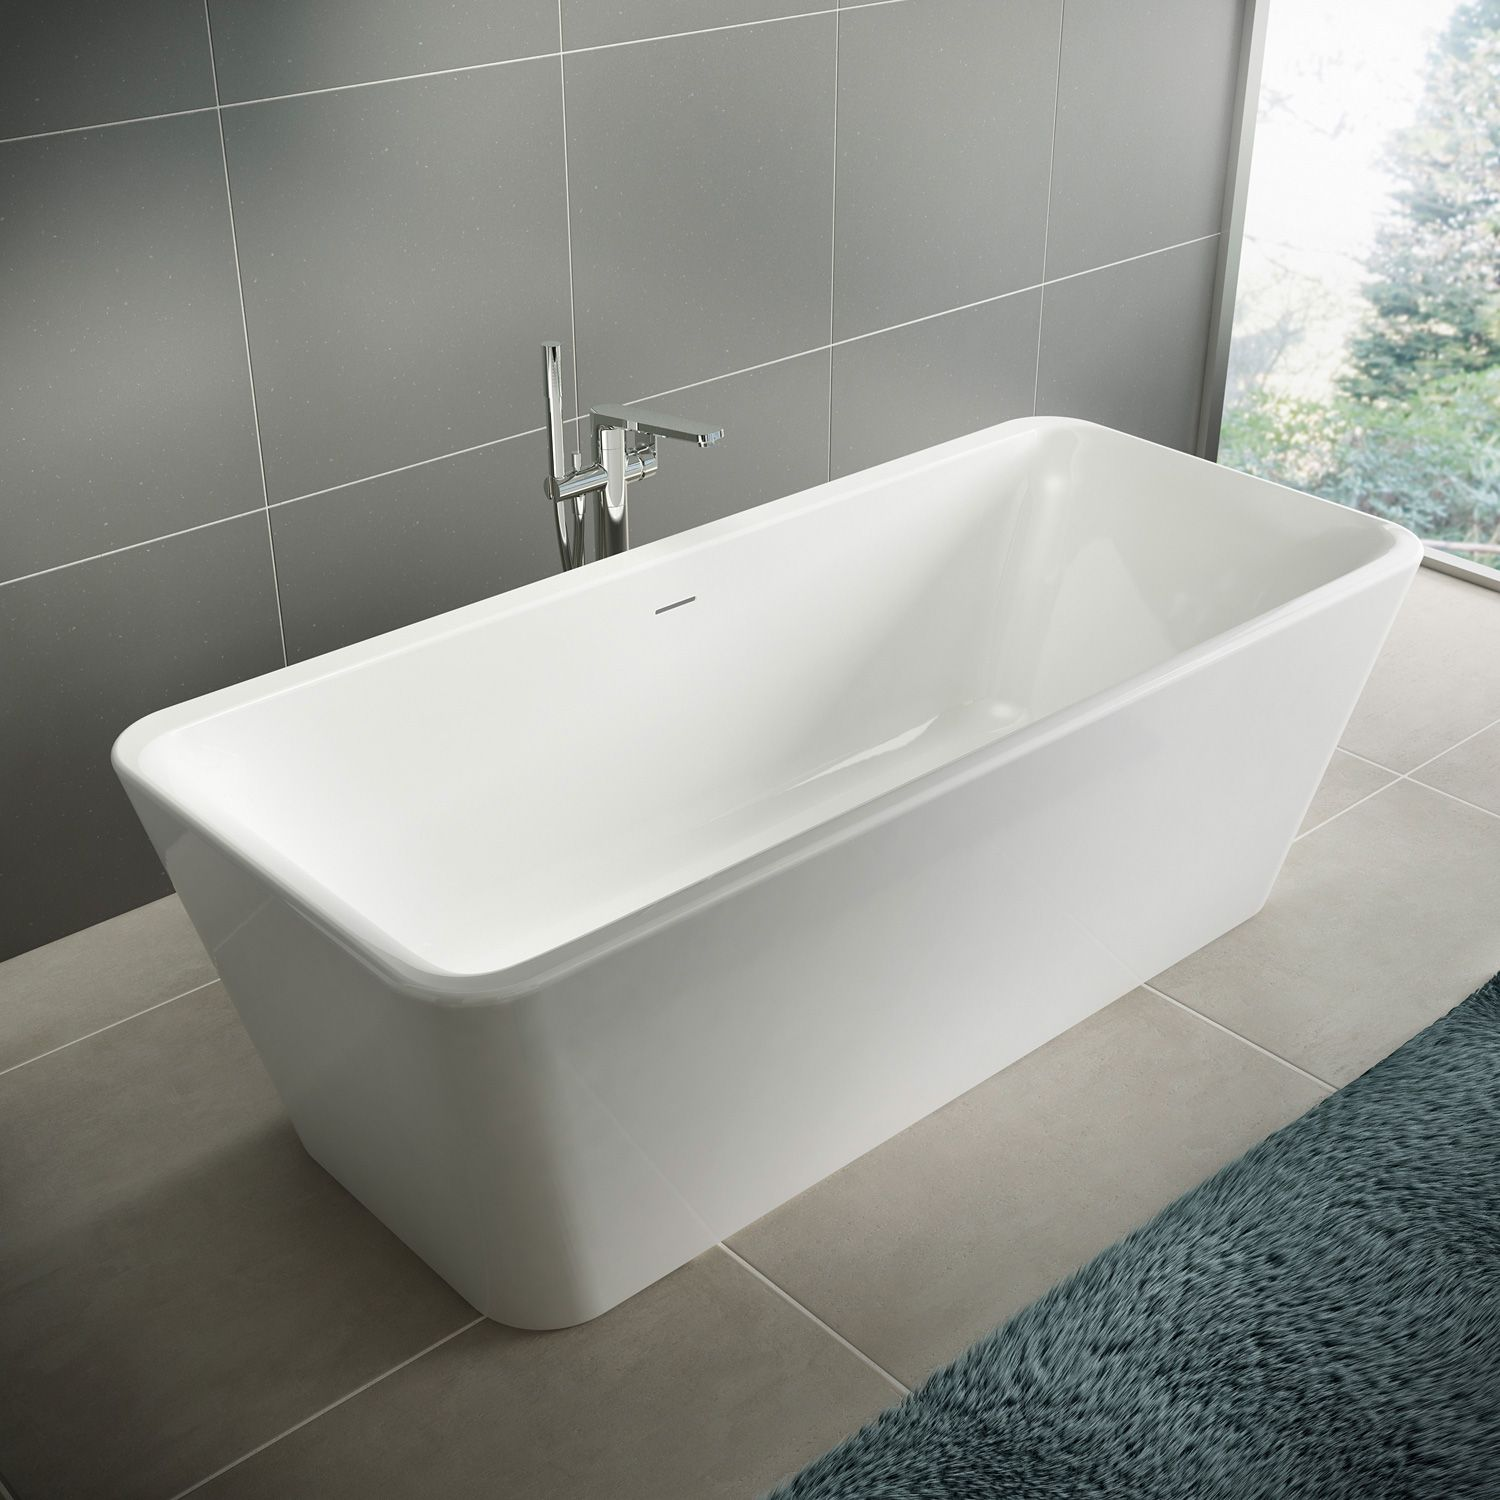 Ideal Standard Tonic Ii Freestanding Bath White Without Filling Function E398101 Free Standing Bath Bath Bathtub